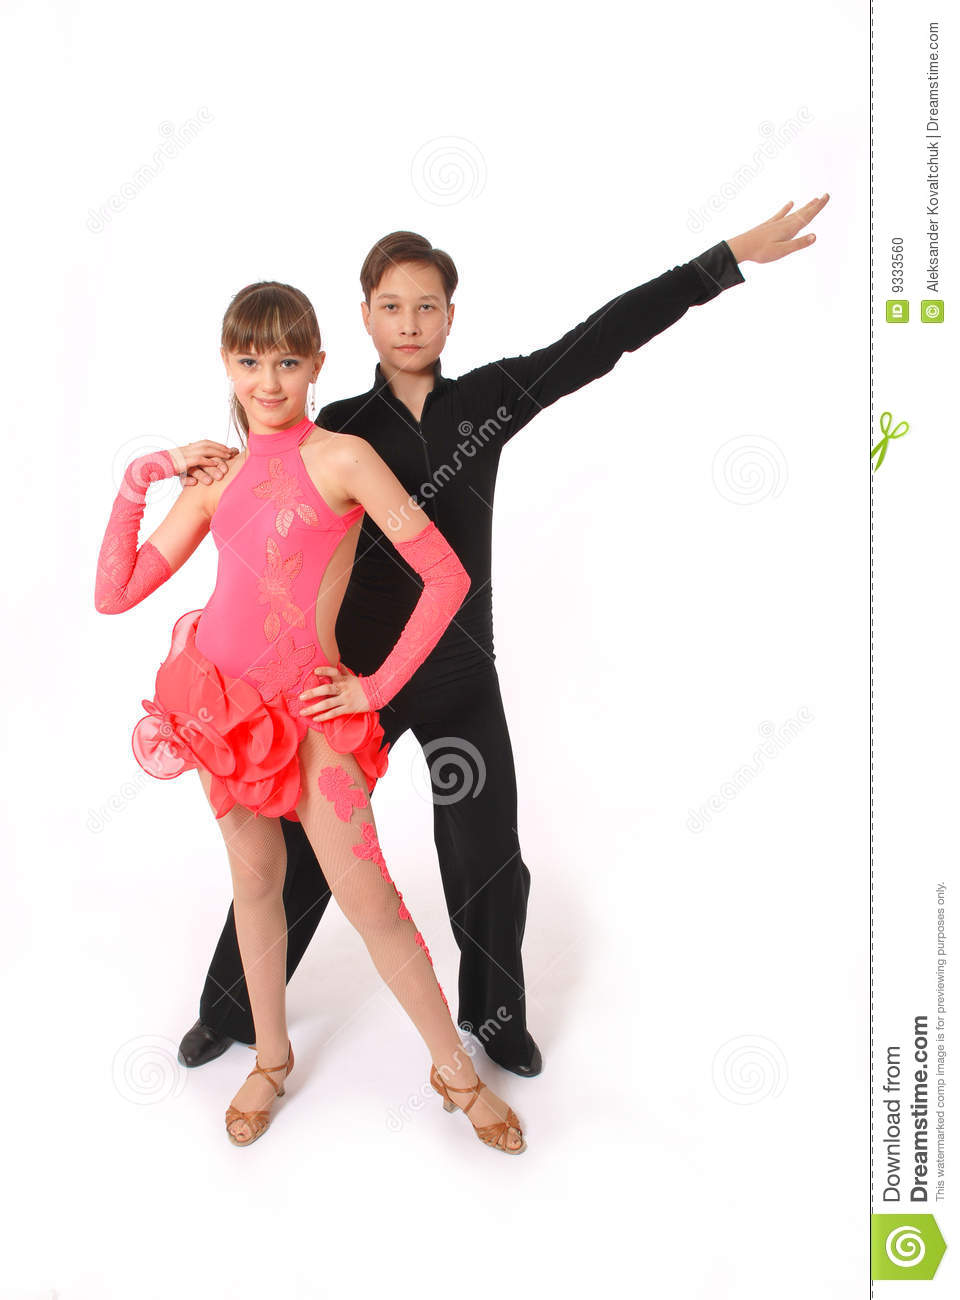 howcast how to ballroom dance